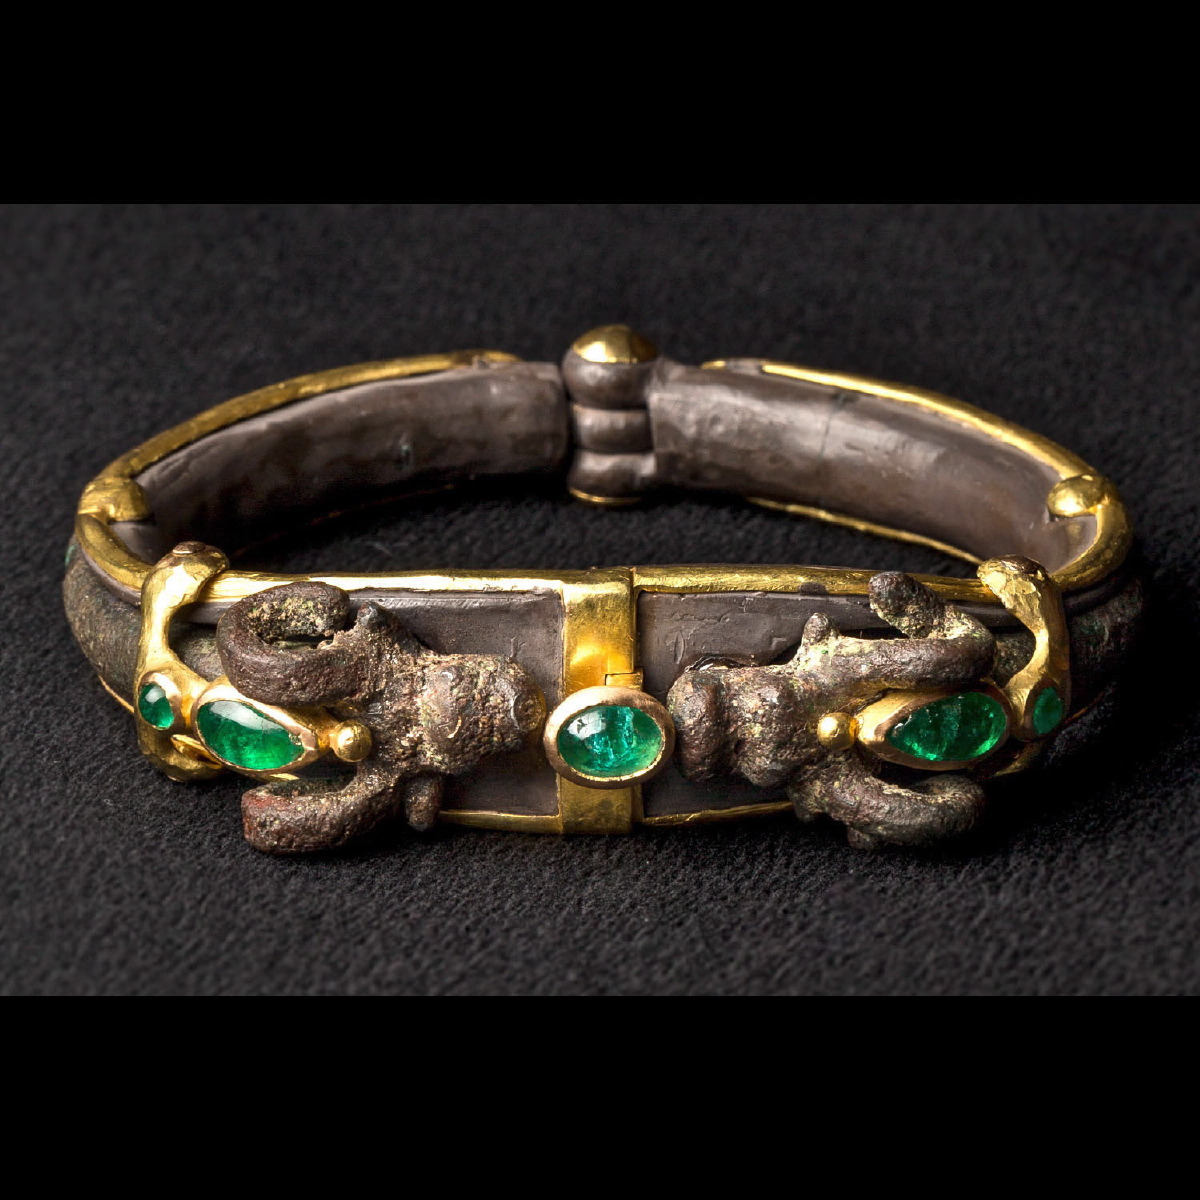 Photo ofBRACELET WITH LURISTAN IBEX ENRICHED WITH EMERALDS